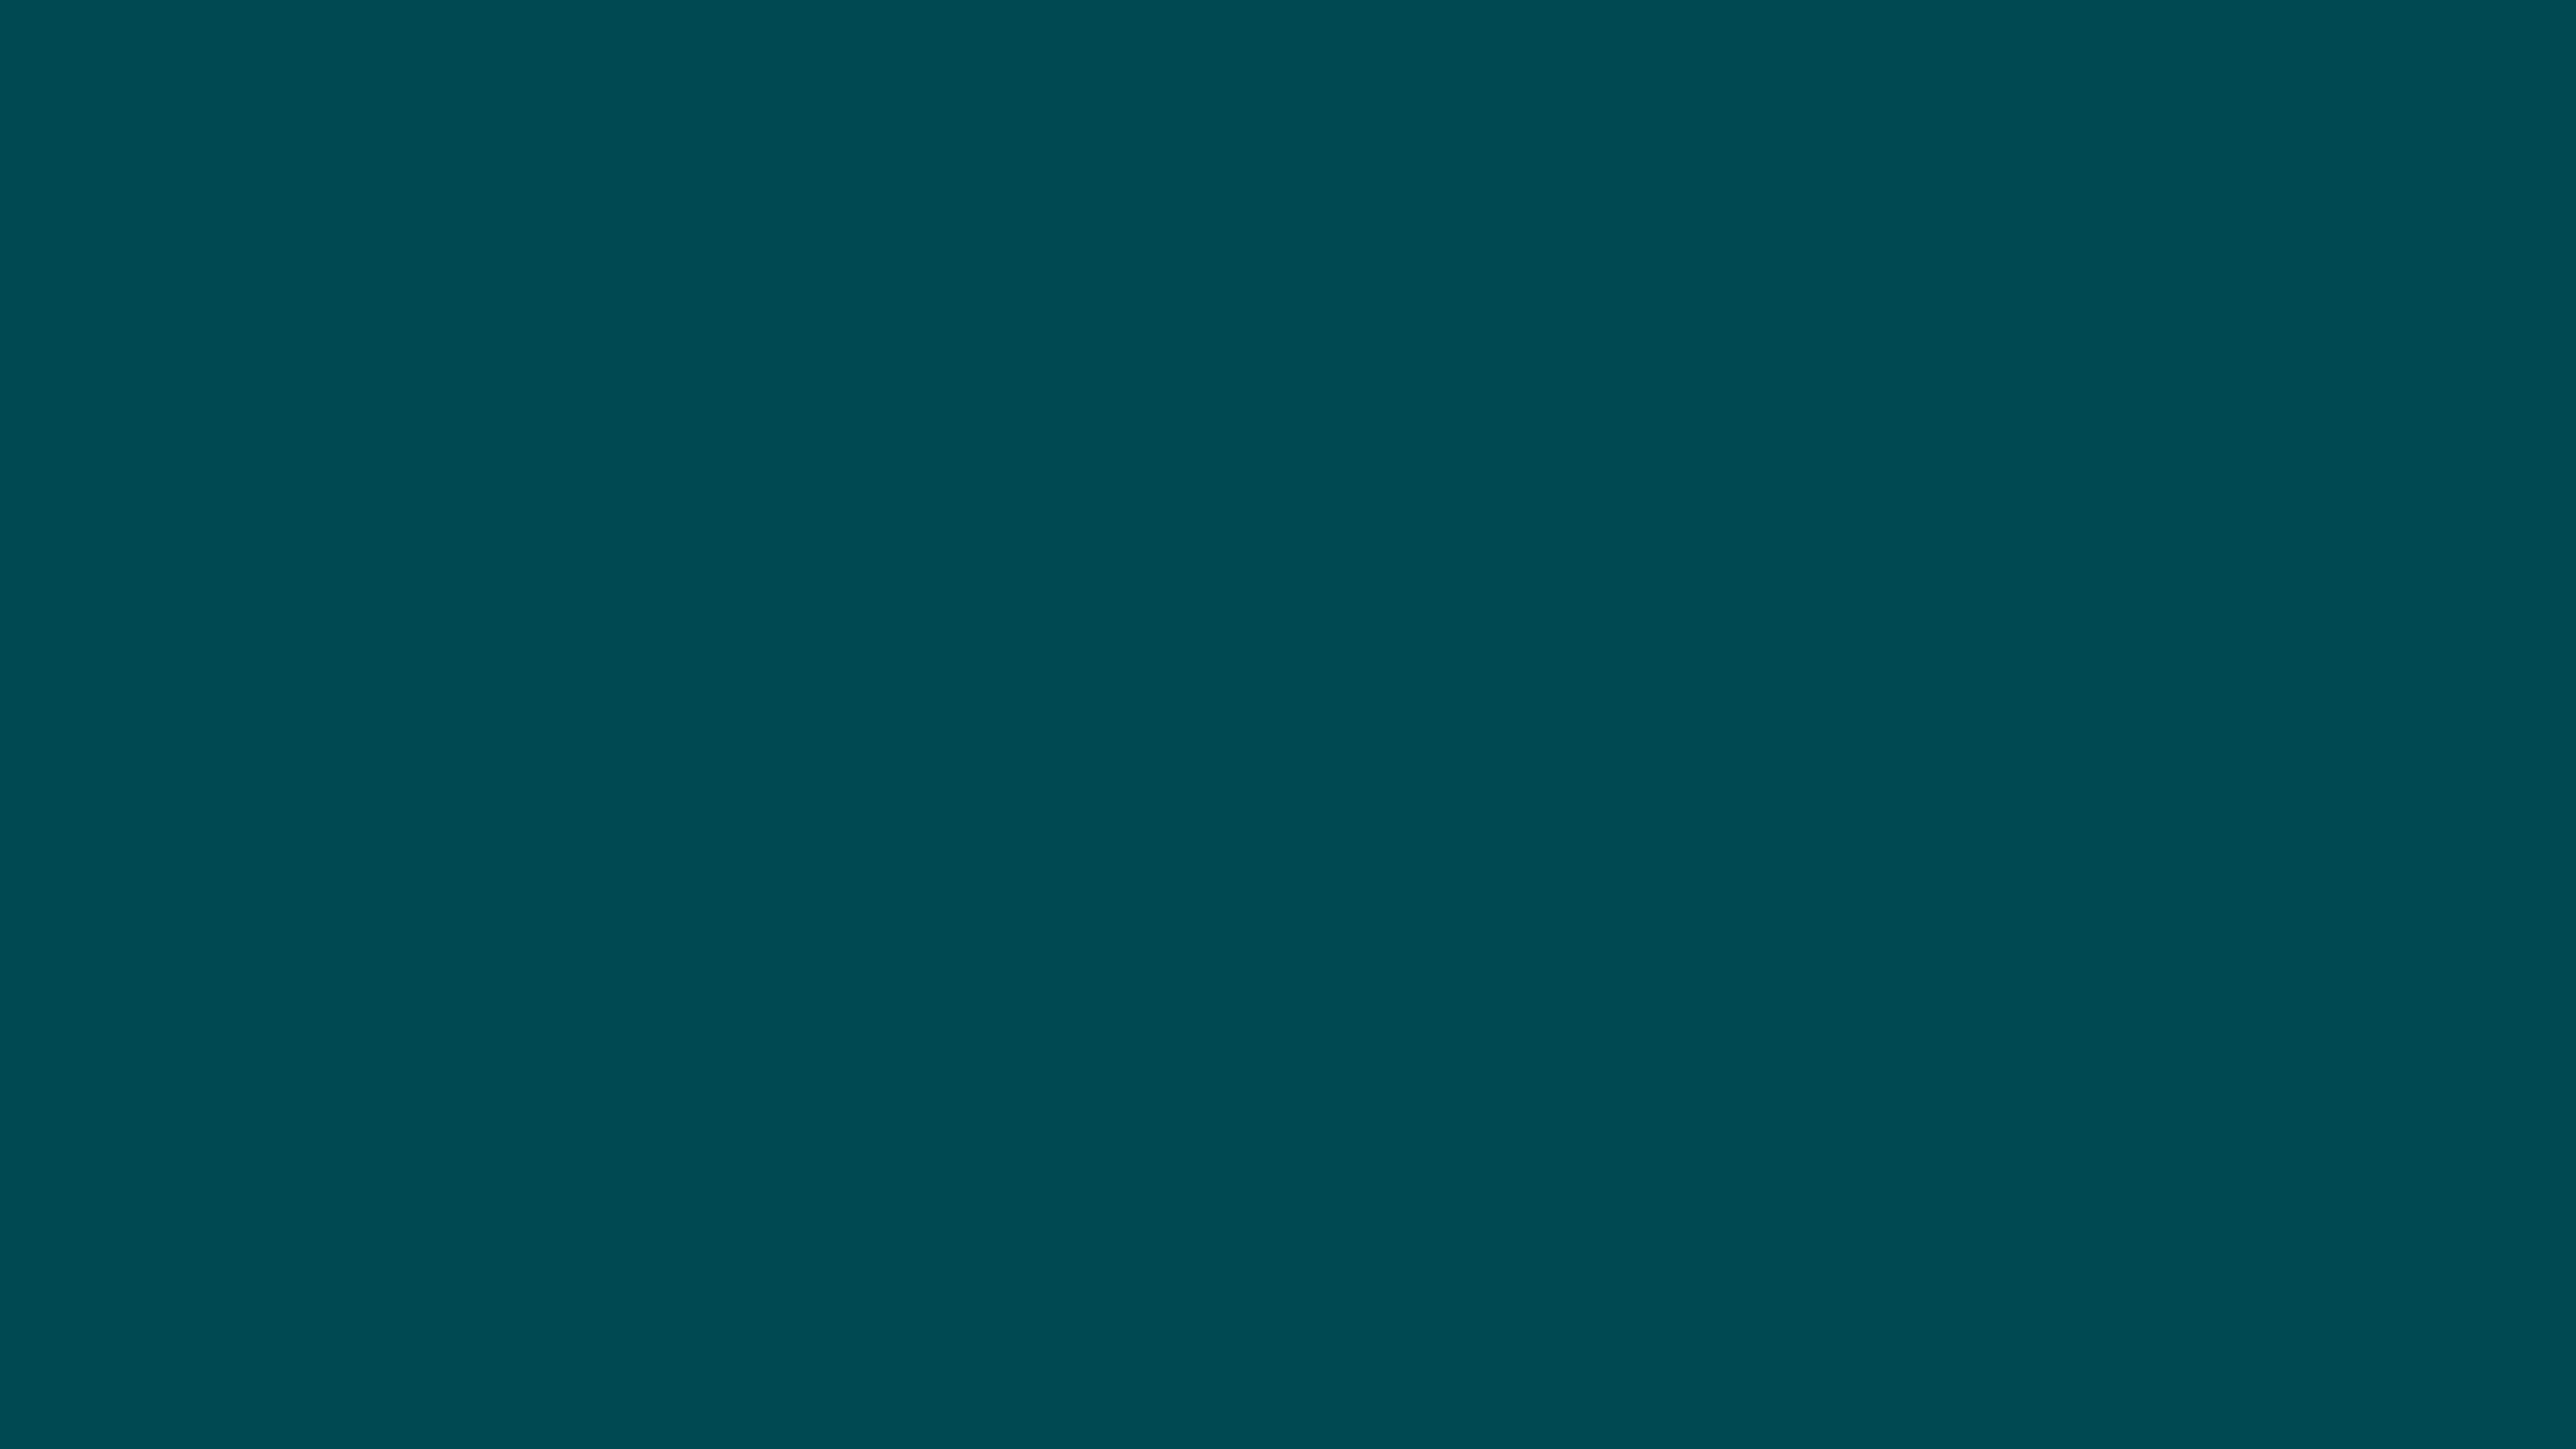 5120x2880 Midnight Green Solid Color Background